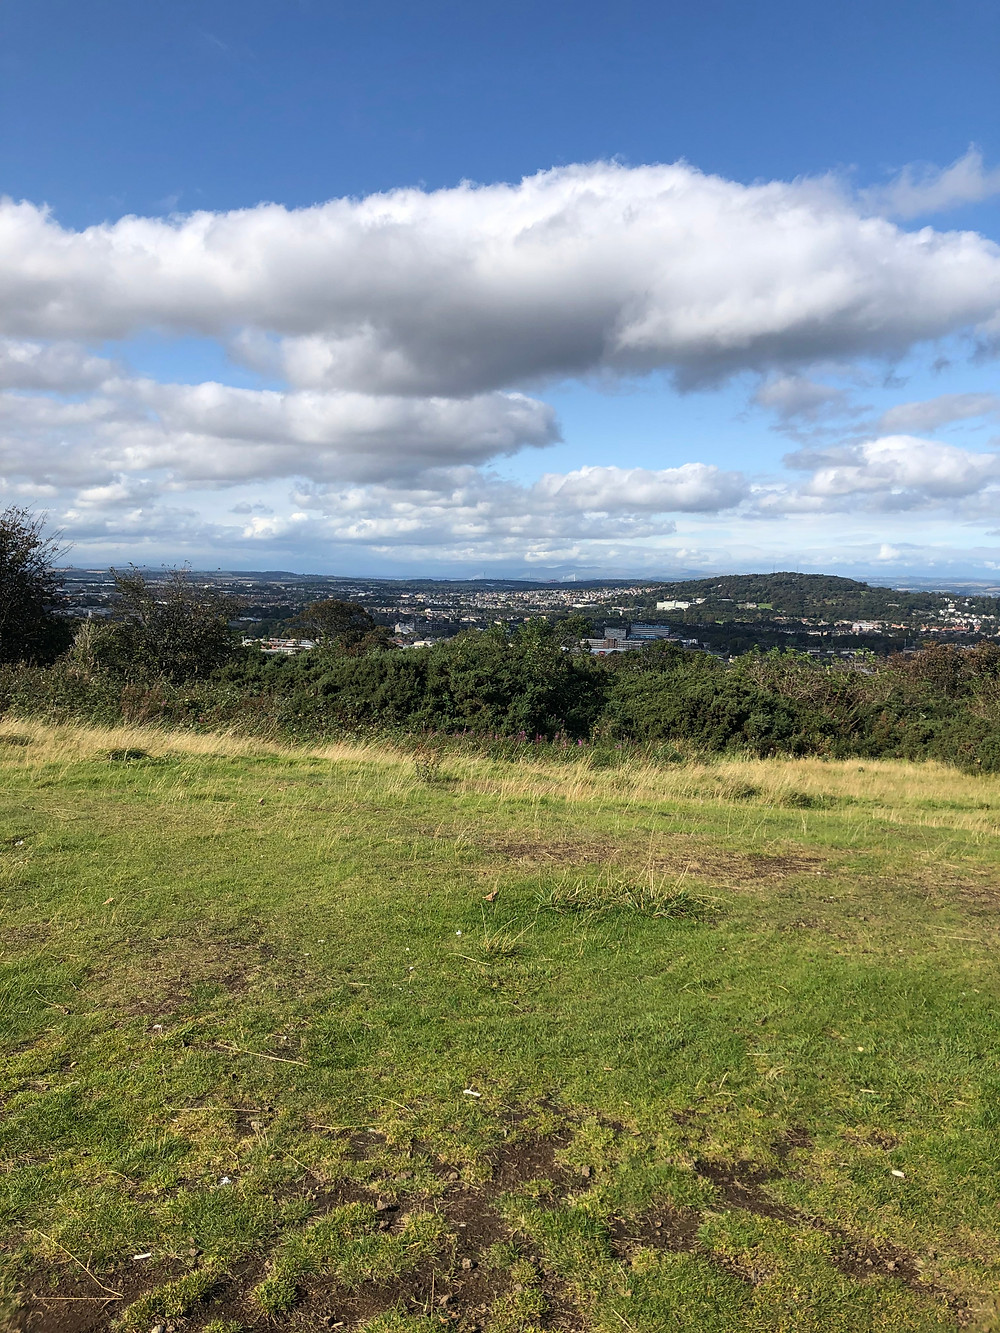 A view from the top of a grassy hill, looking over the Firth of Forth